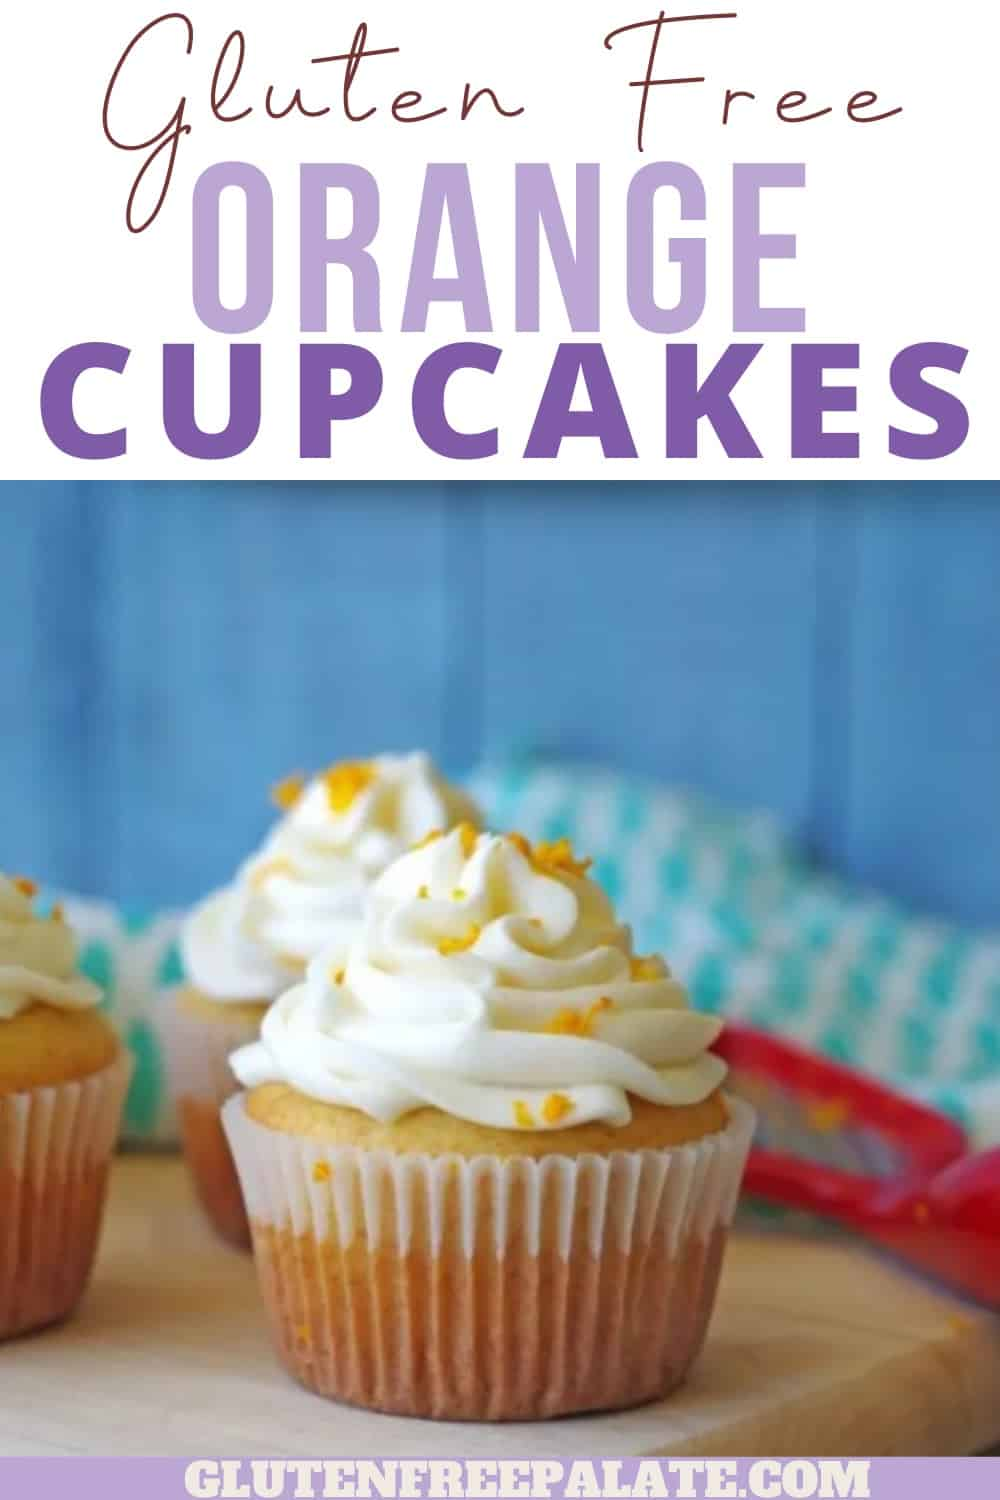 pinterest image for gluten free orange cupcakes